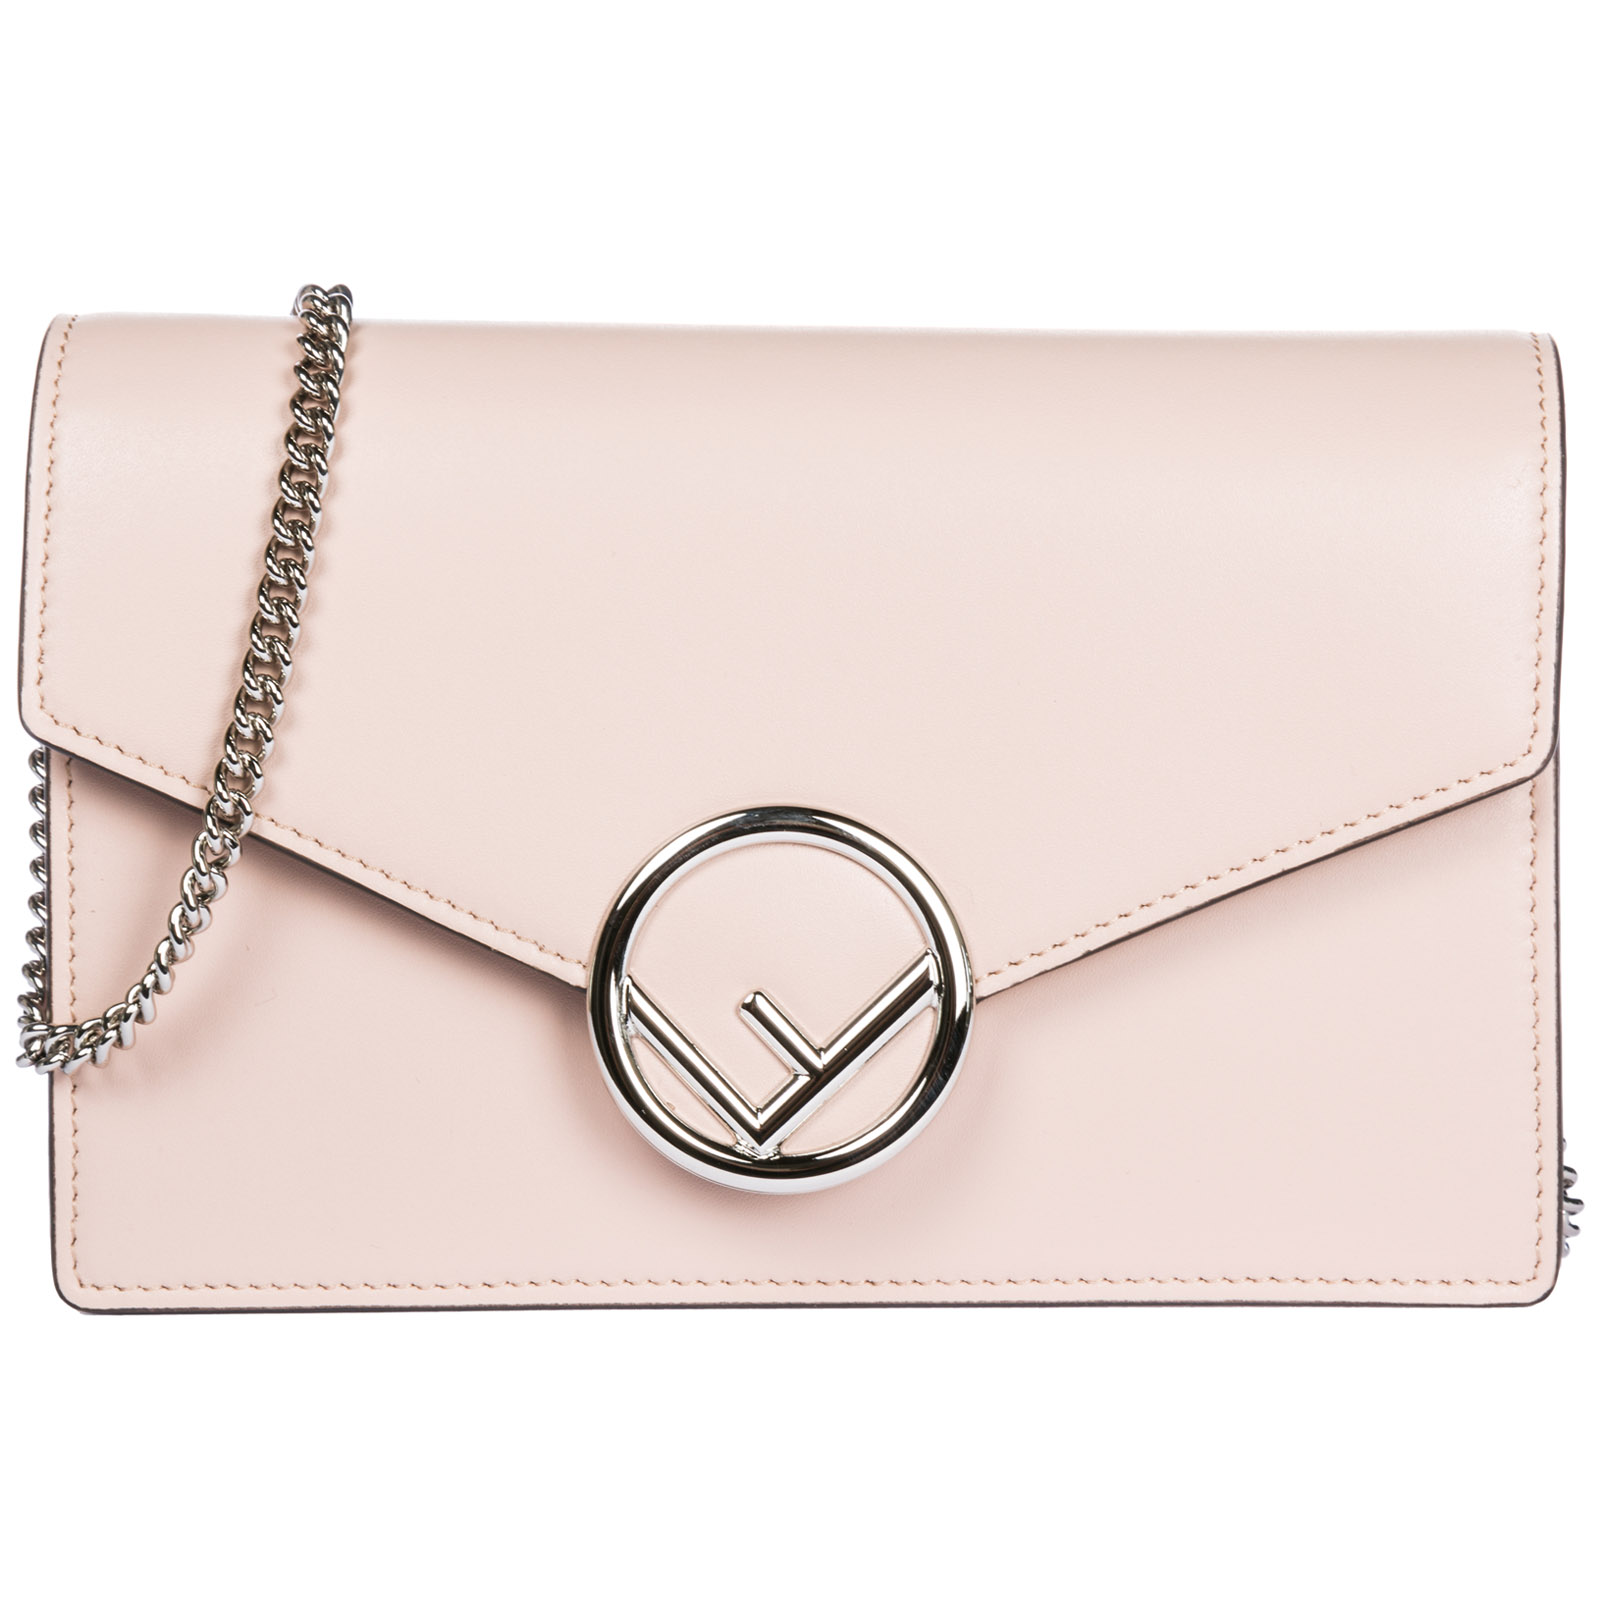 Women s leather shoulder bag wallet on chain ... 8439715a11